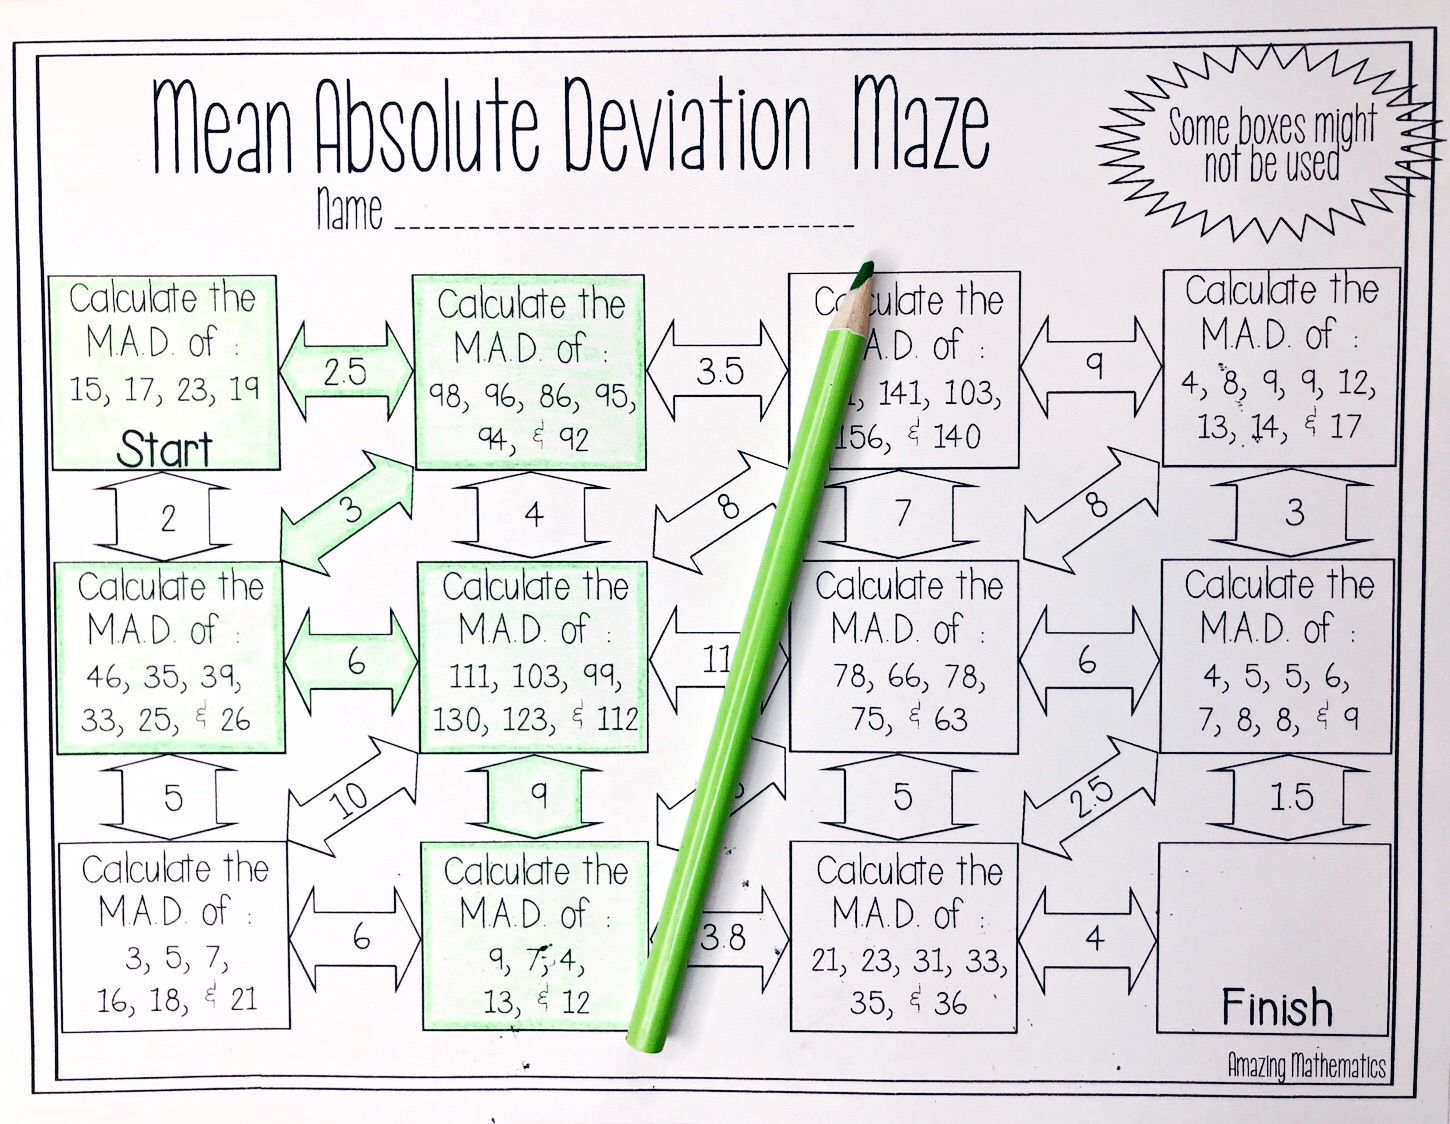 Mean Absolute Deviation Maze Worksheet